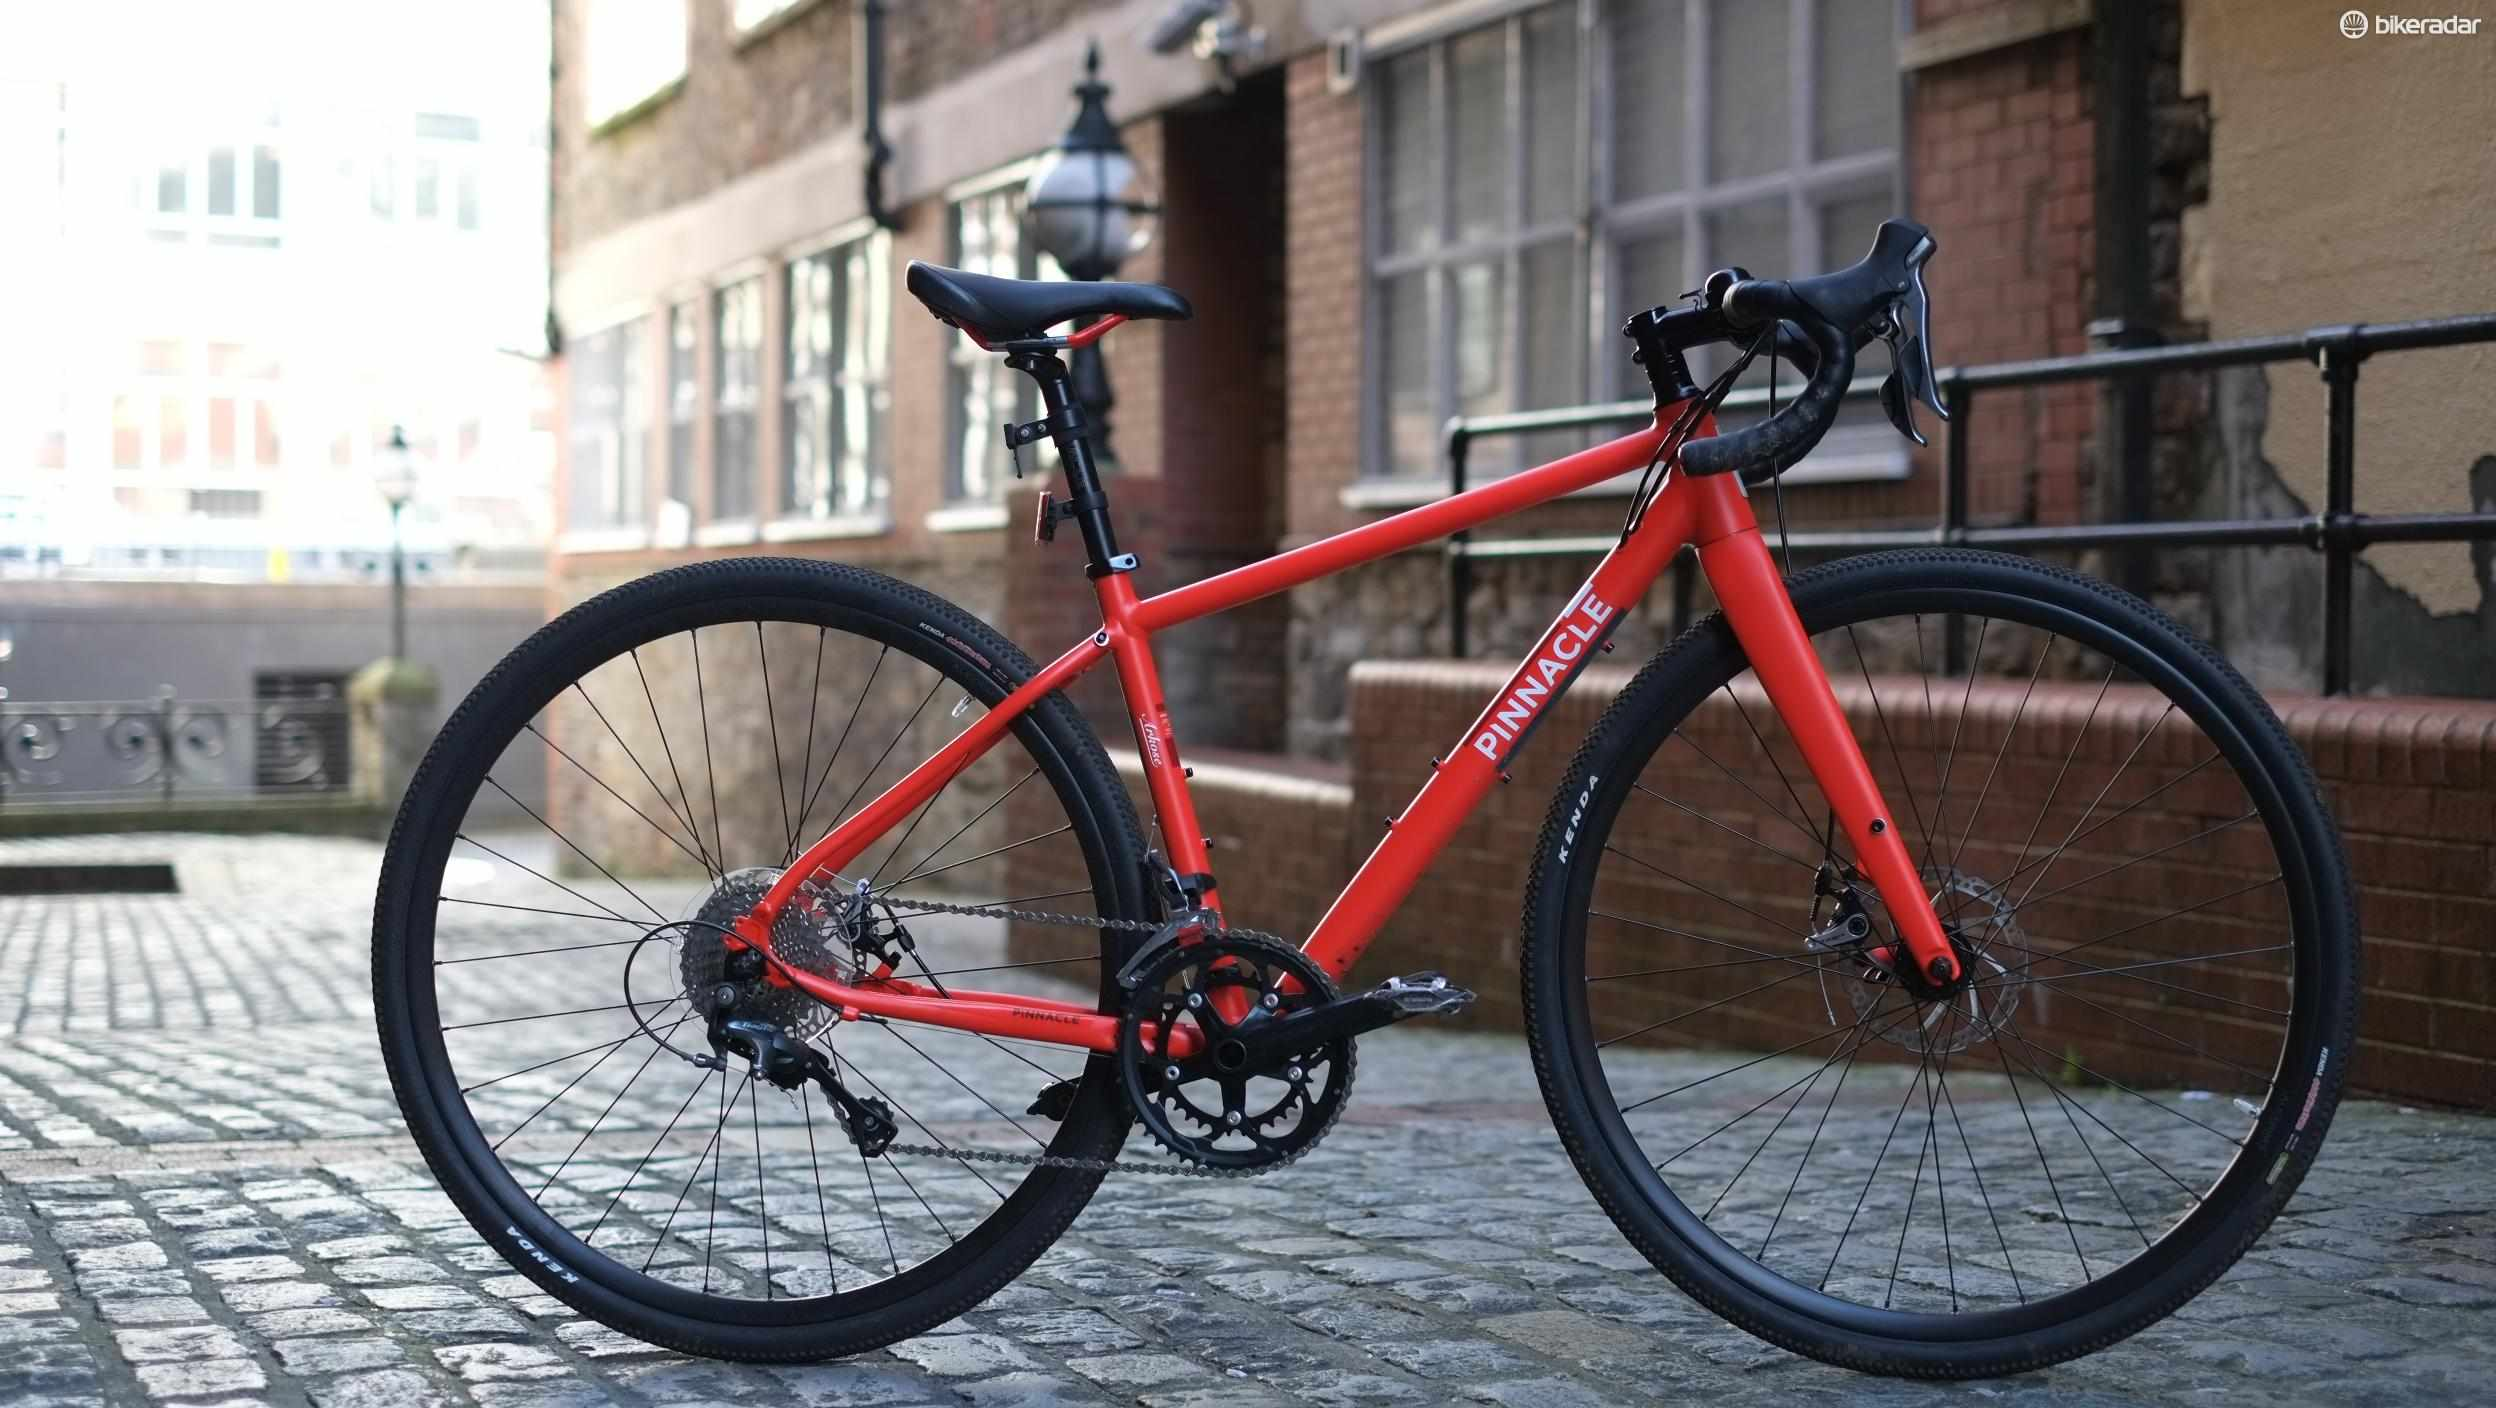 The Pinnacle Arkose 2 is a women's specific adventure road bike